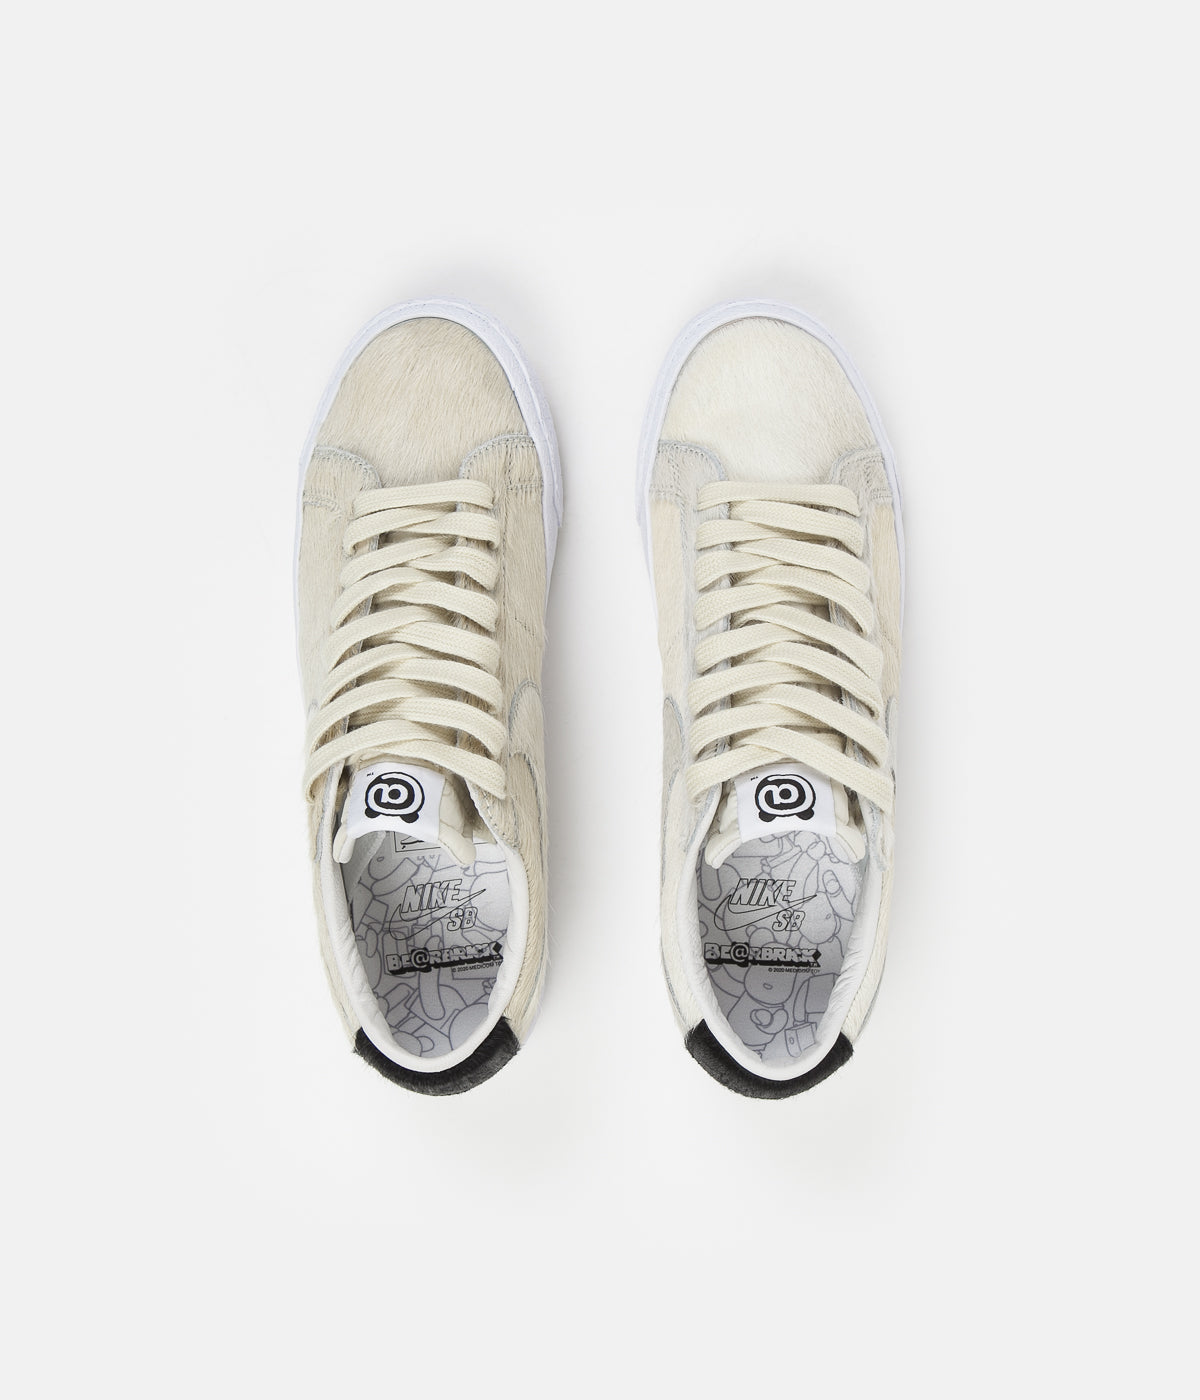 Nike SB Blazer Low GT Medicom Shoes - Light Cream / Light Cream - Black